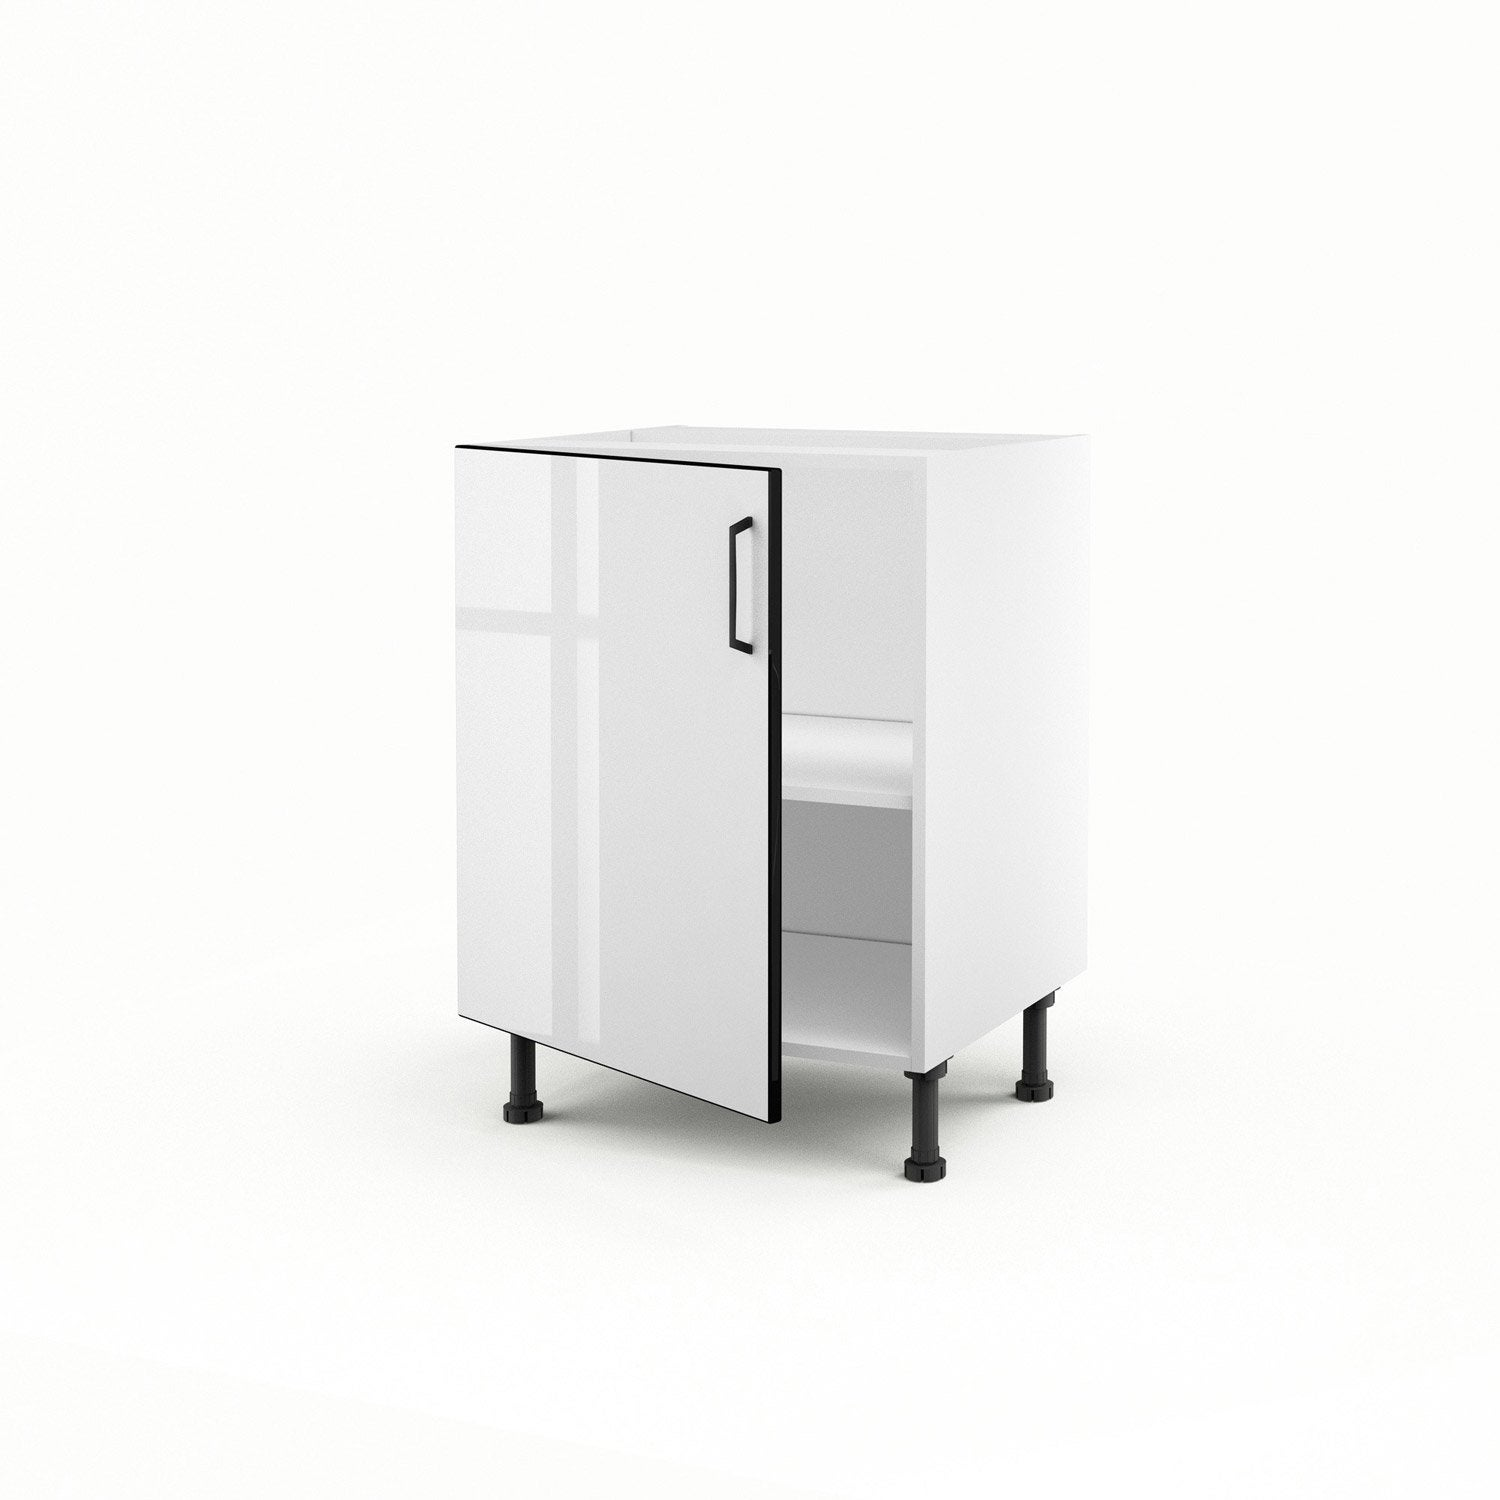 Meuble de cuisine bas blanc 1 porte pop h70xl60xp56 cm for Bas de porte leroy merlin